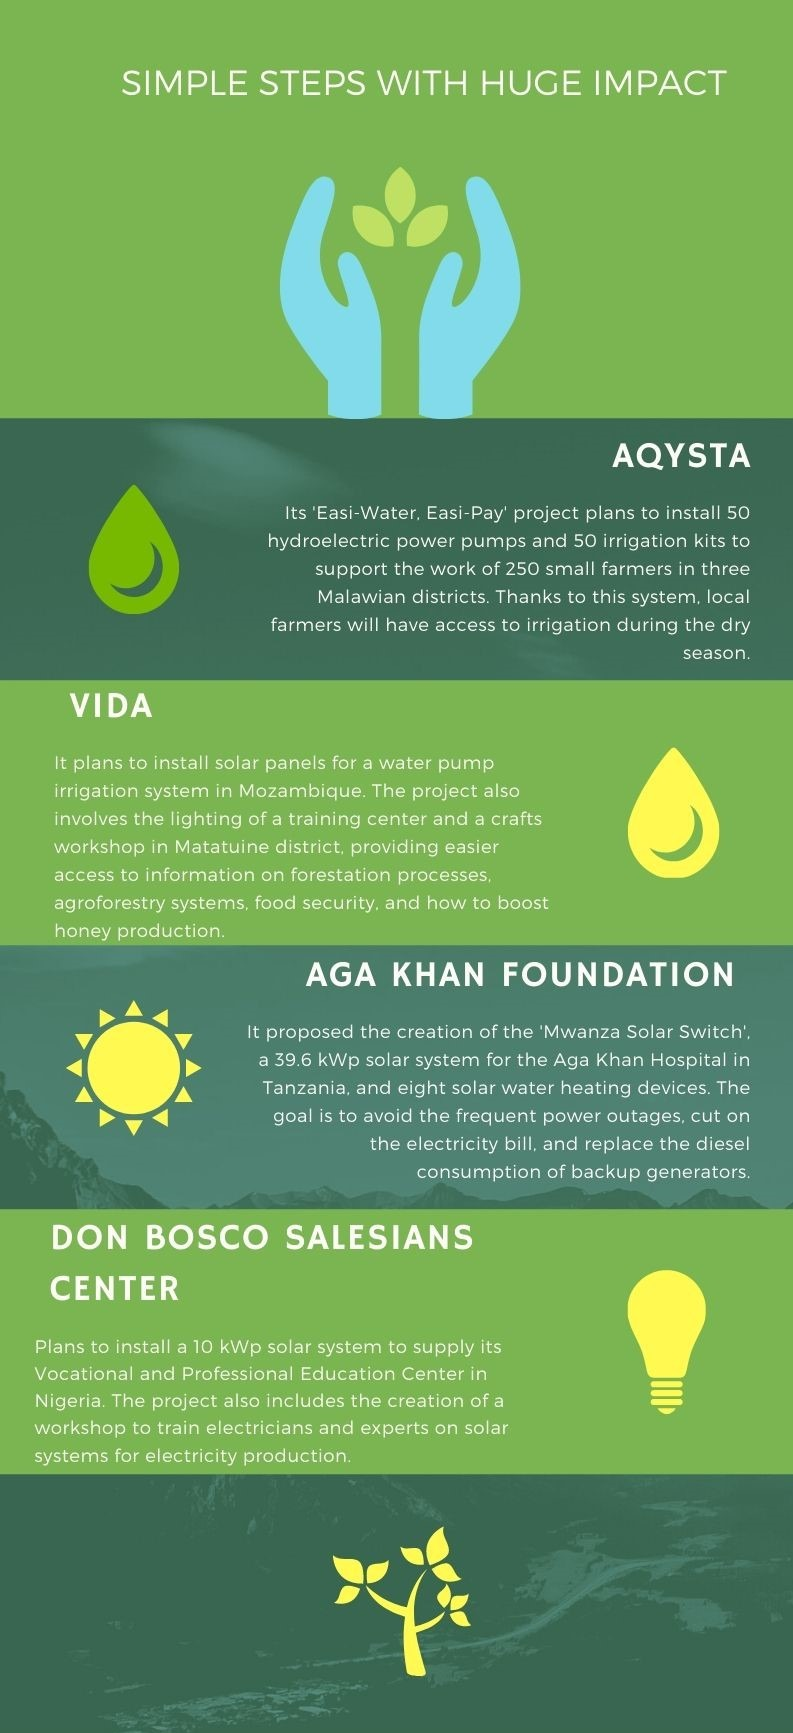 Portugal's EDP sponsors eight renewable projects across Africa